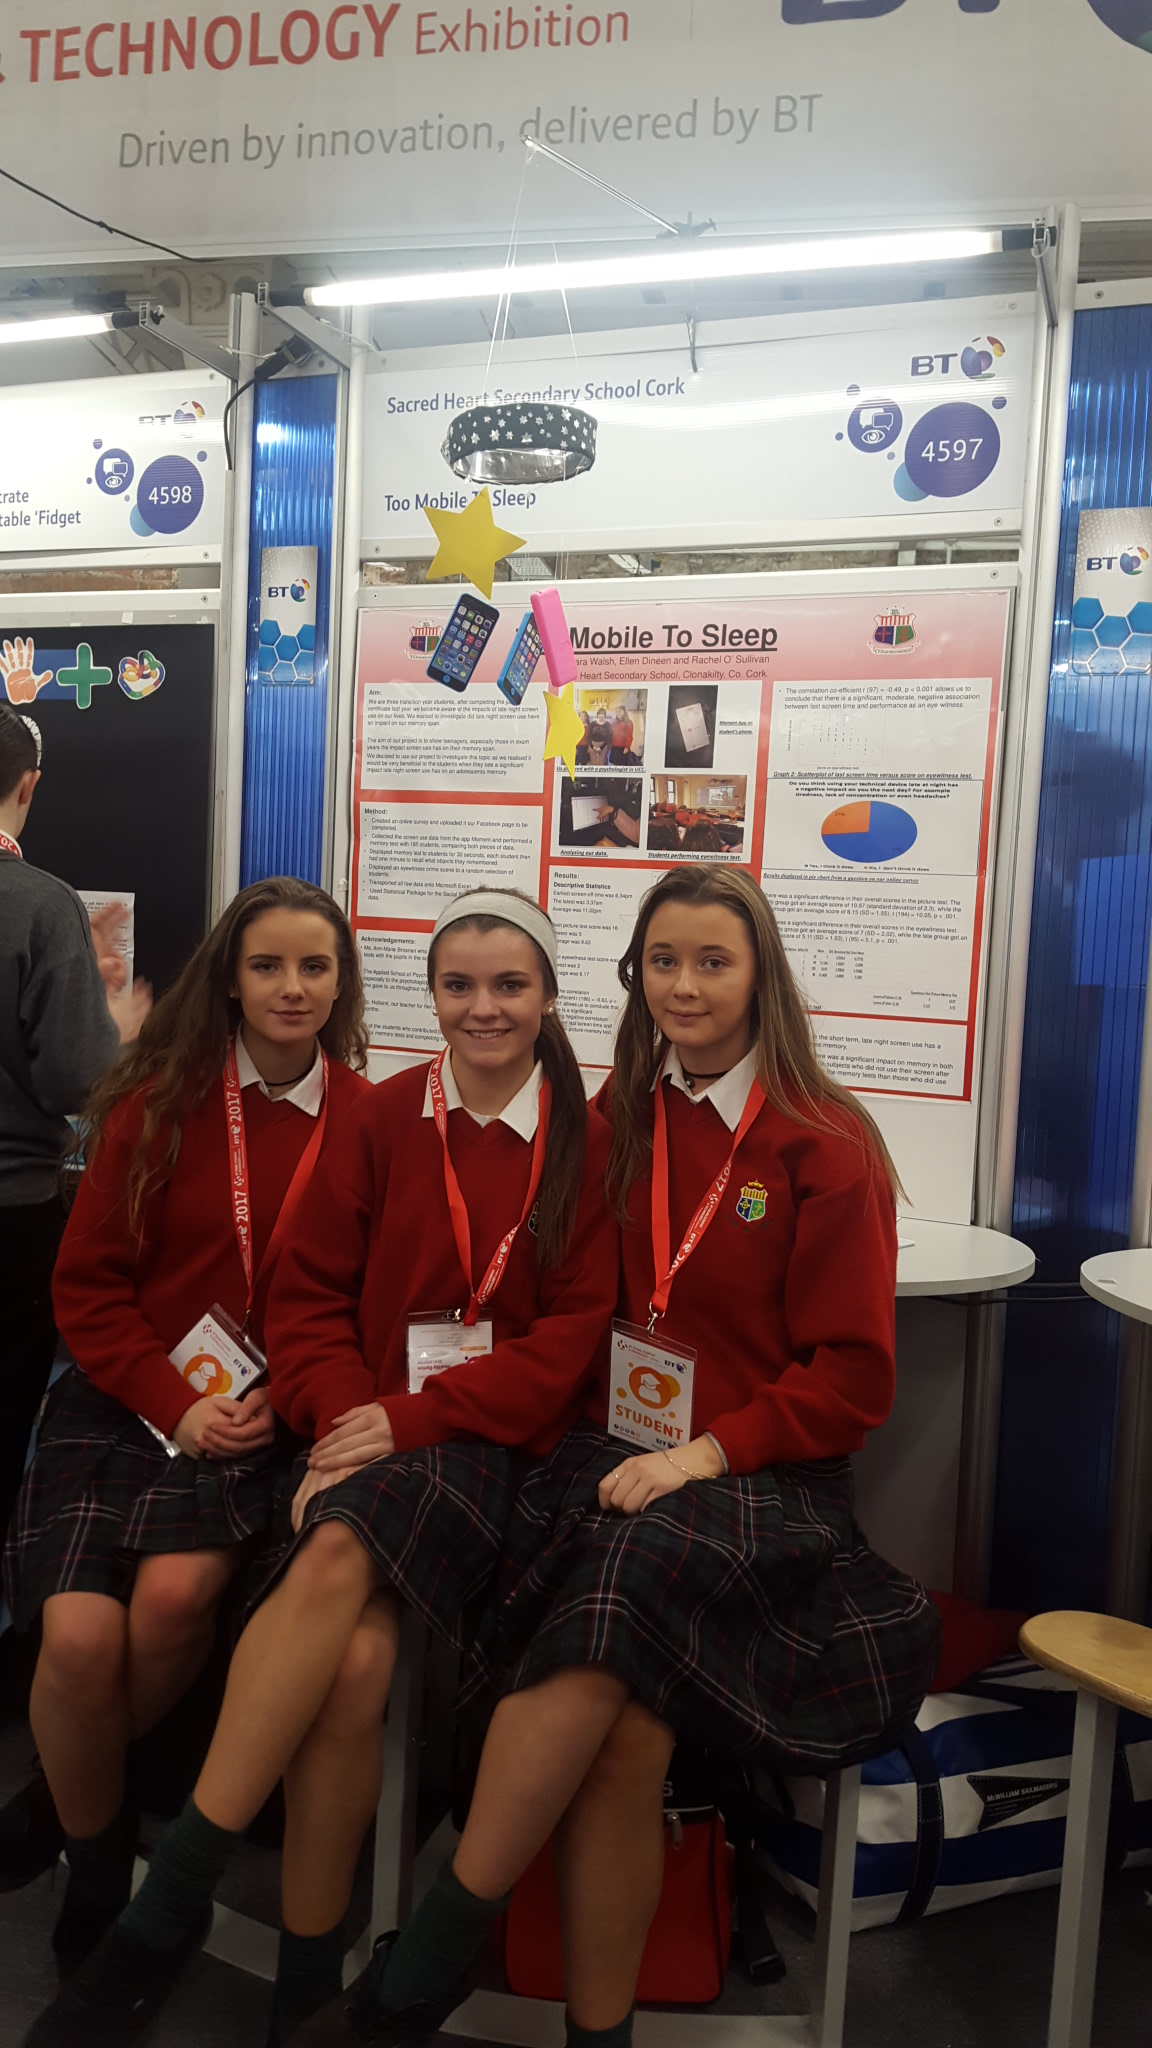 Group 2.Rachel O'Sullivan, Ellen Dineen and Ciara Walsh. Their project is an investigation into the effect late night screen use (tablets and mobile phones) has on your memory.